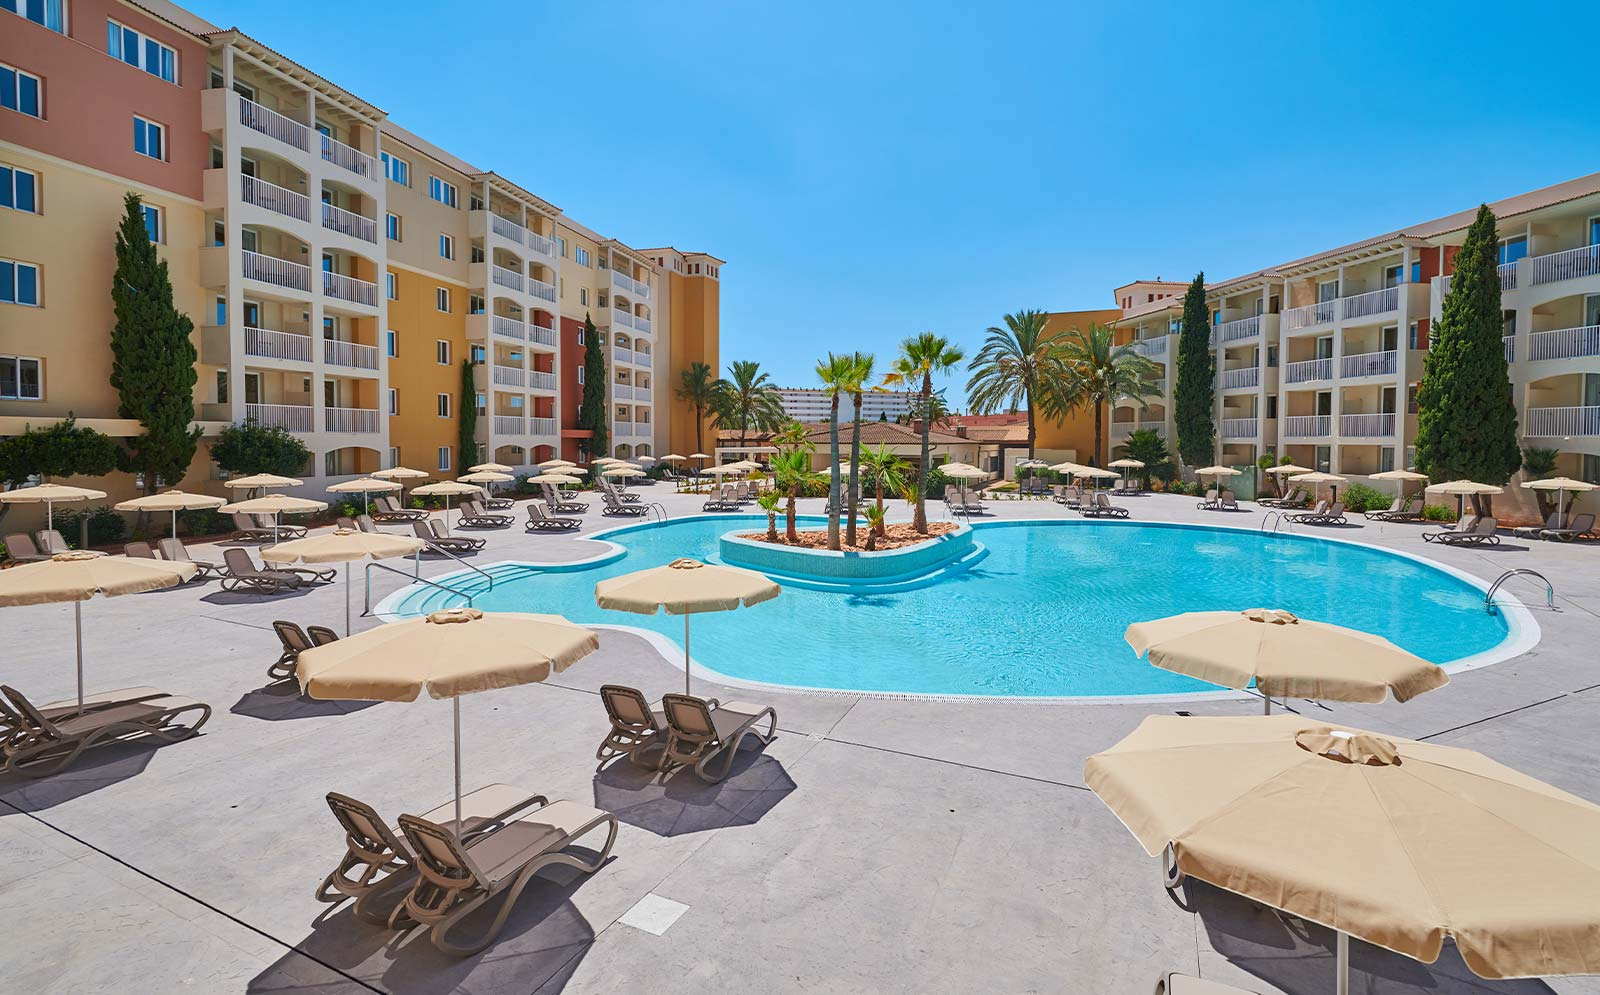 Protur bad a park aparthotel 4 in sa coma mallorca for Appart hotel park and suites